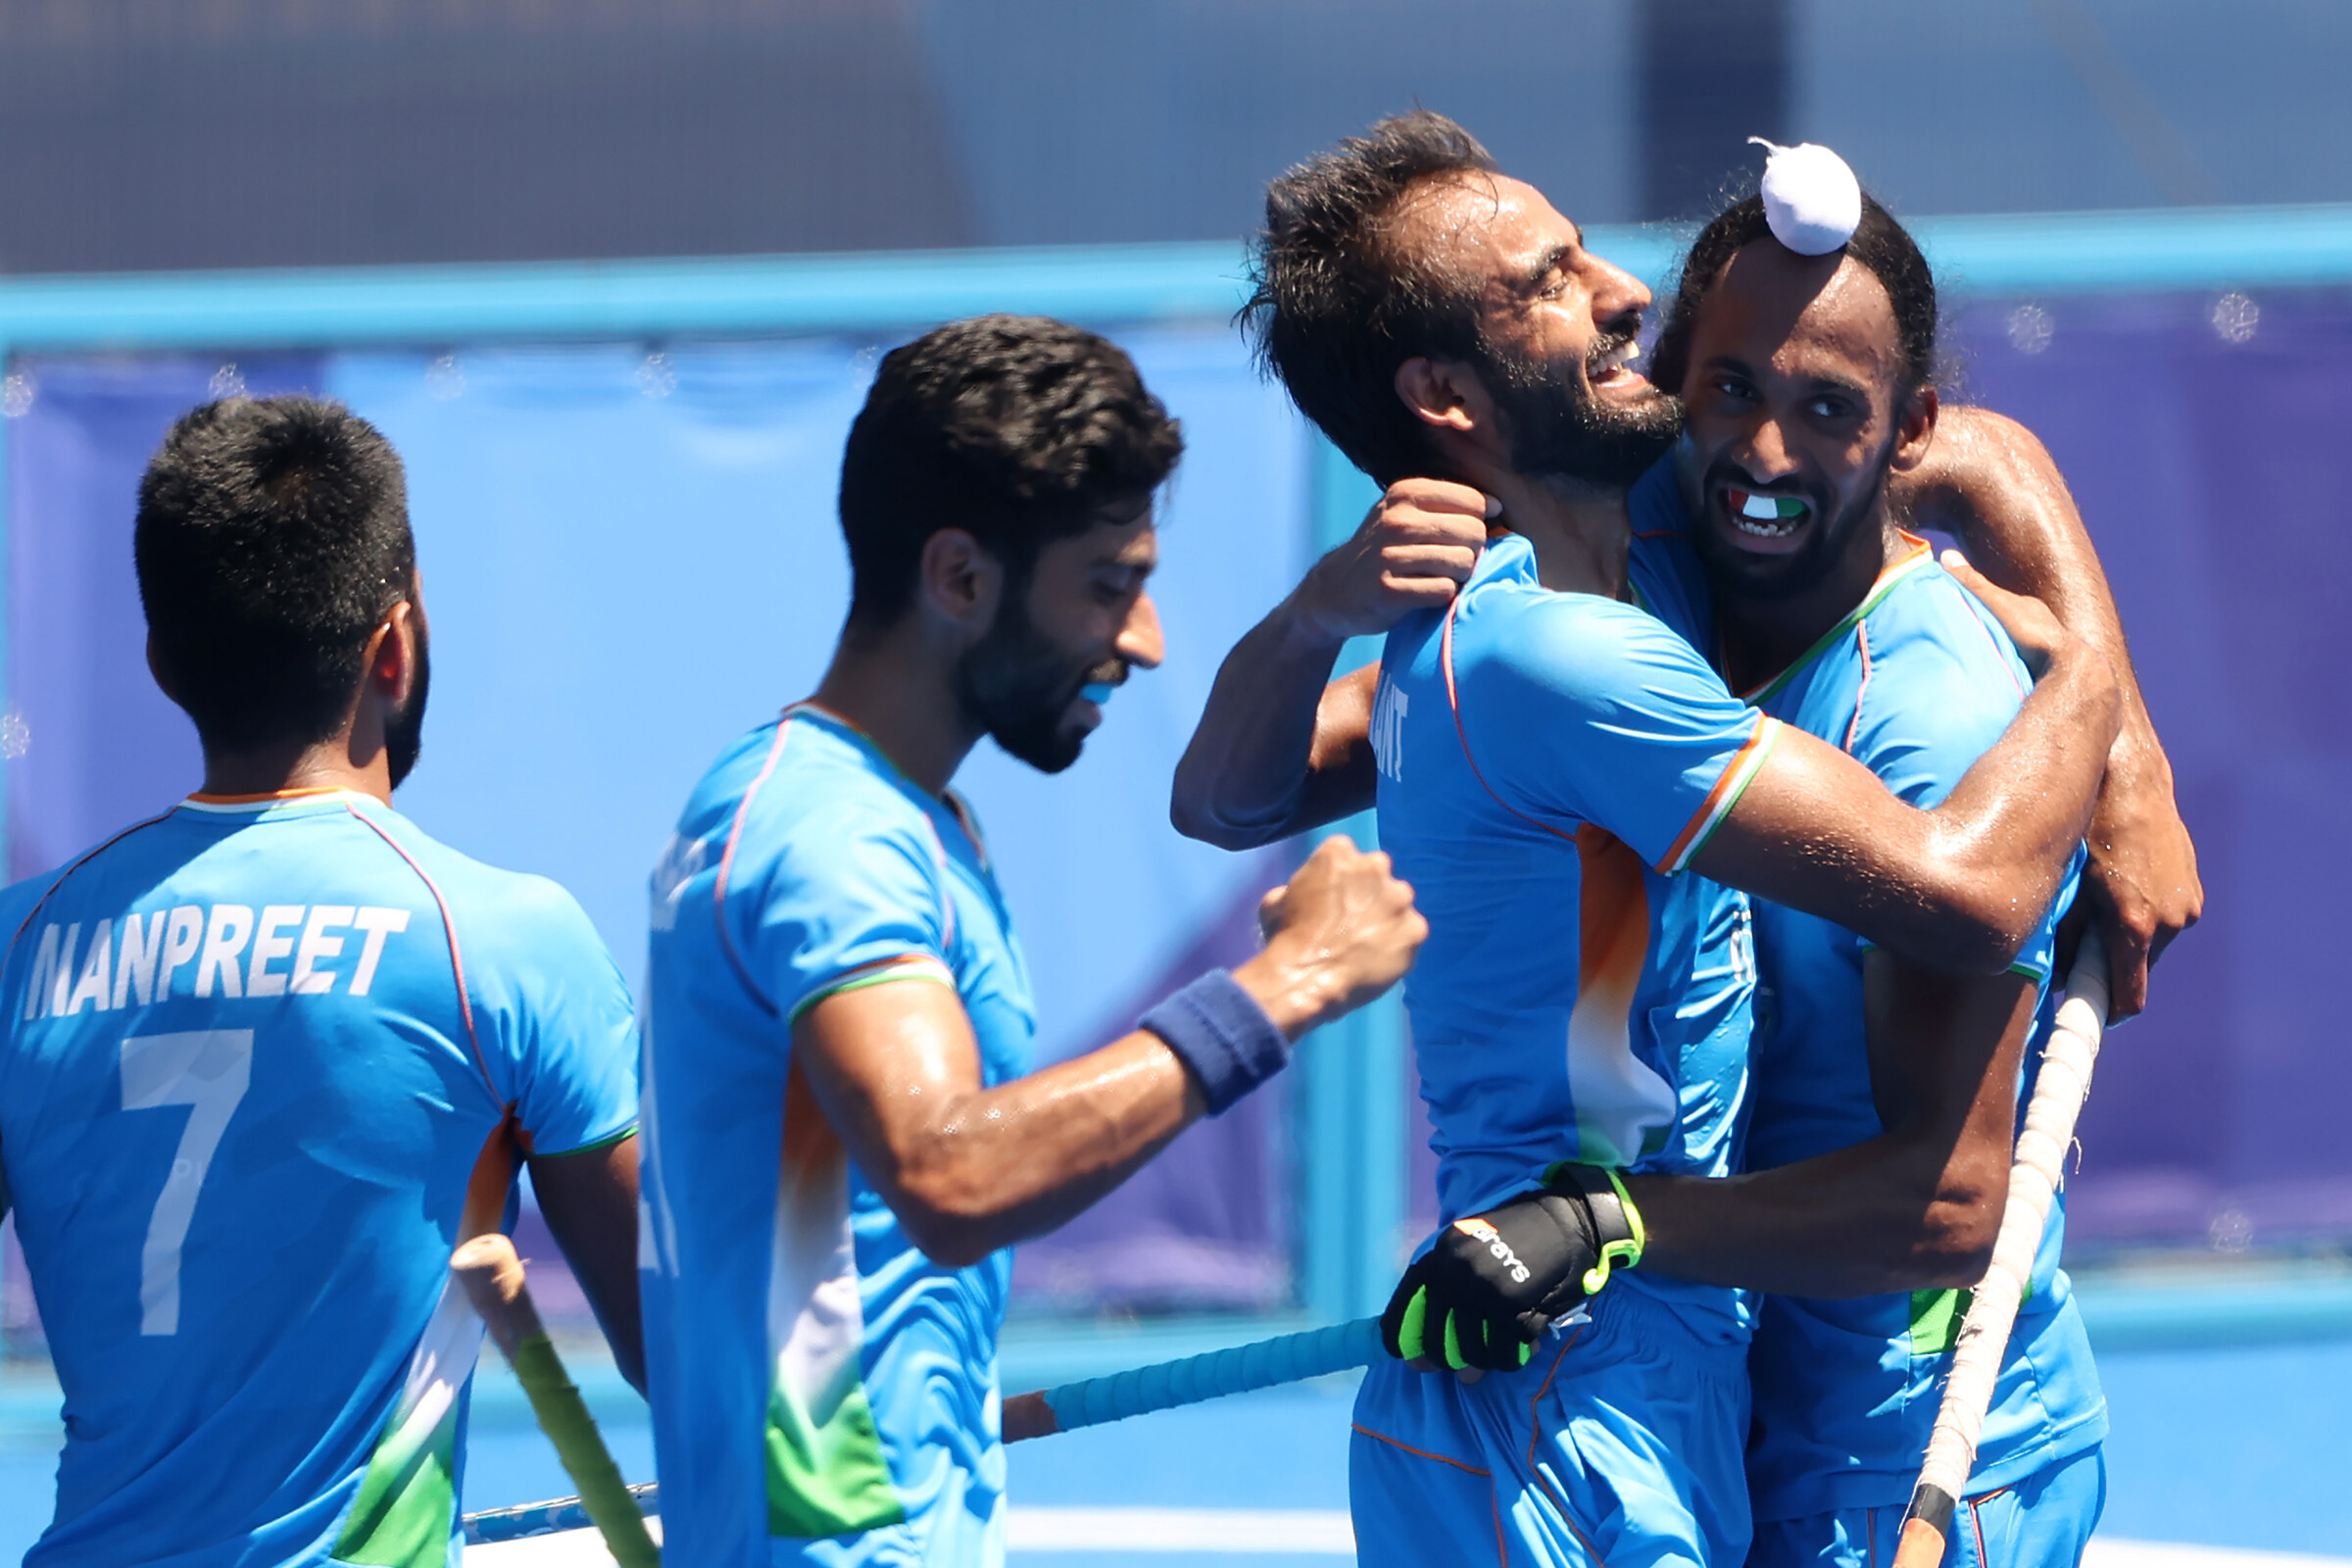 <i>Alexander Hassenstein/Getty Images</i><br/>Harmanpreet Singh celebrates scoring their third goal with teammates during the men's bronze medal match.